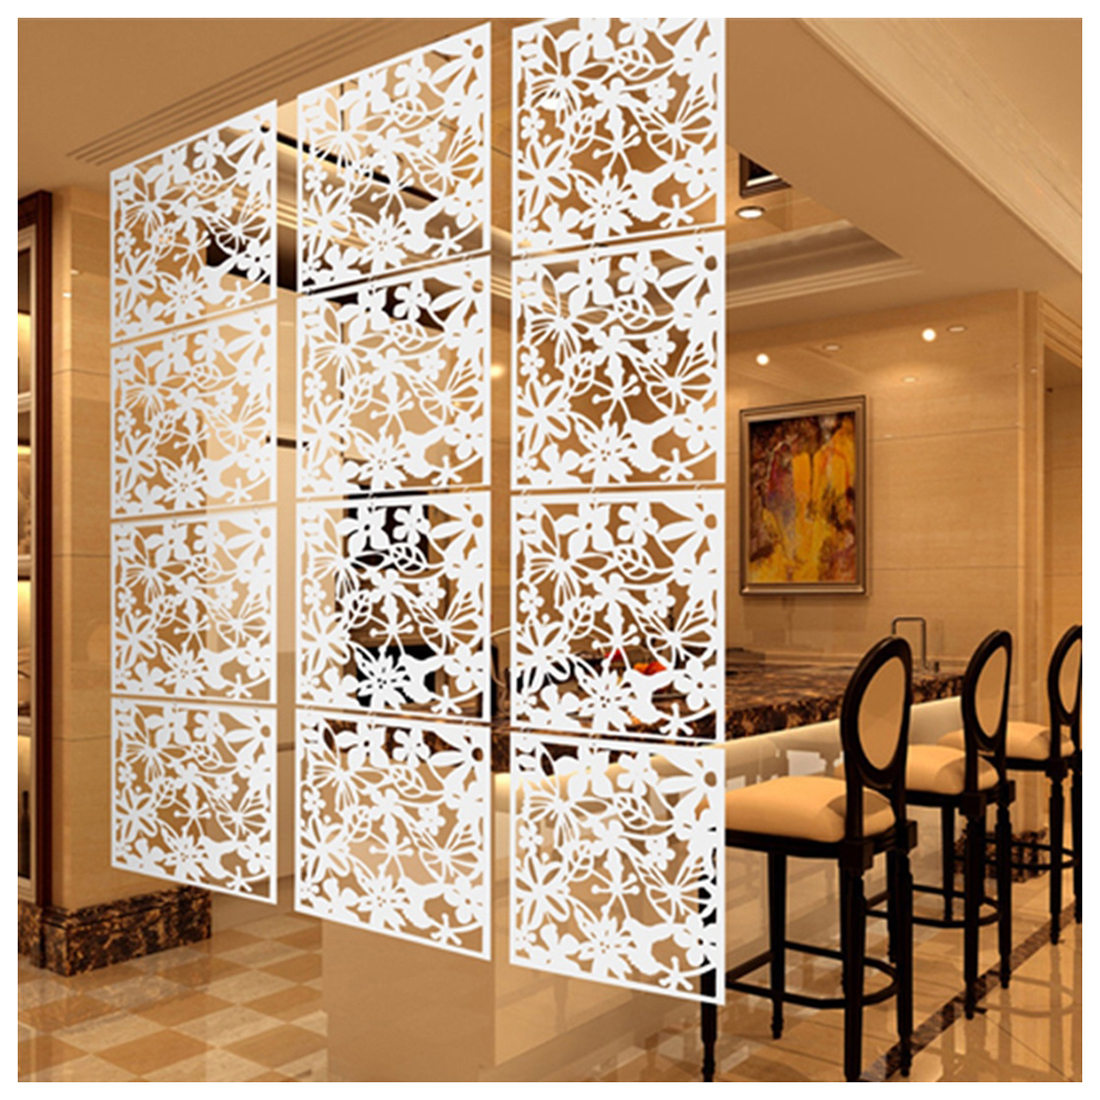 Us 6 5 20 Off Fashion 4 Pcs Erfly Bird Flower Hanging Screen Parion Divider Panel Room Curtain Home Decor White In Screens Dividers